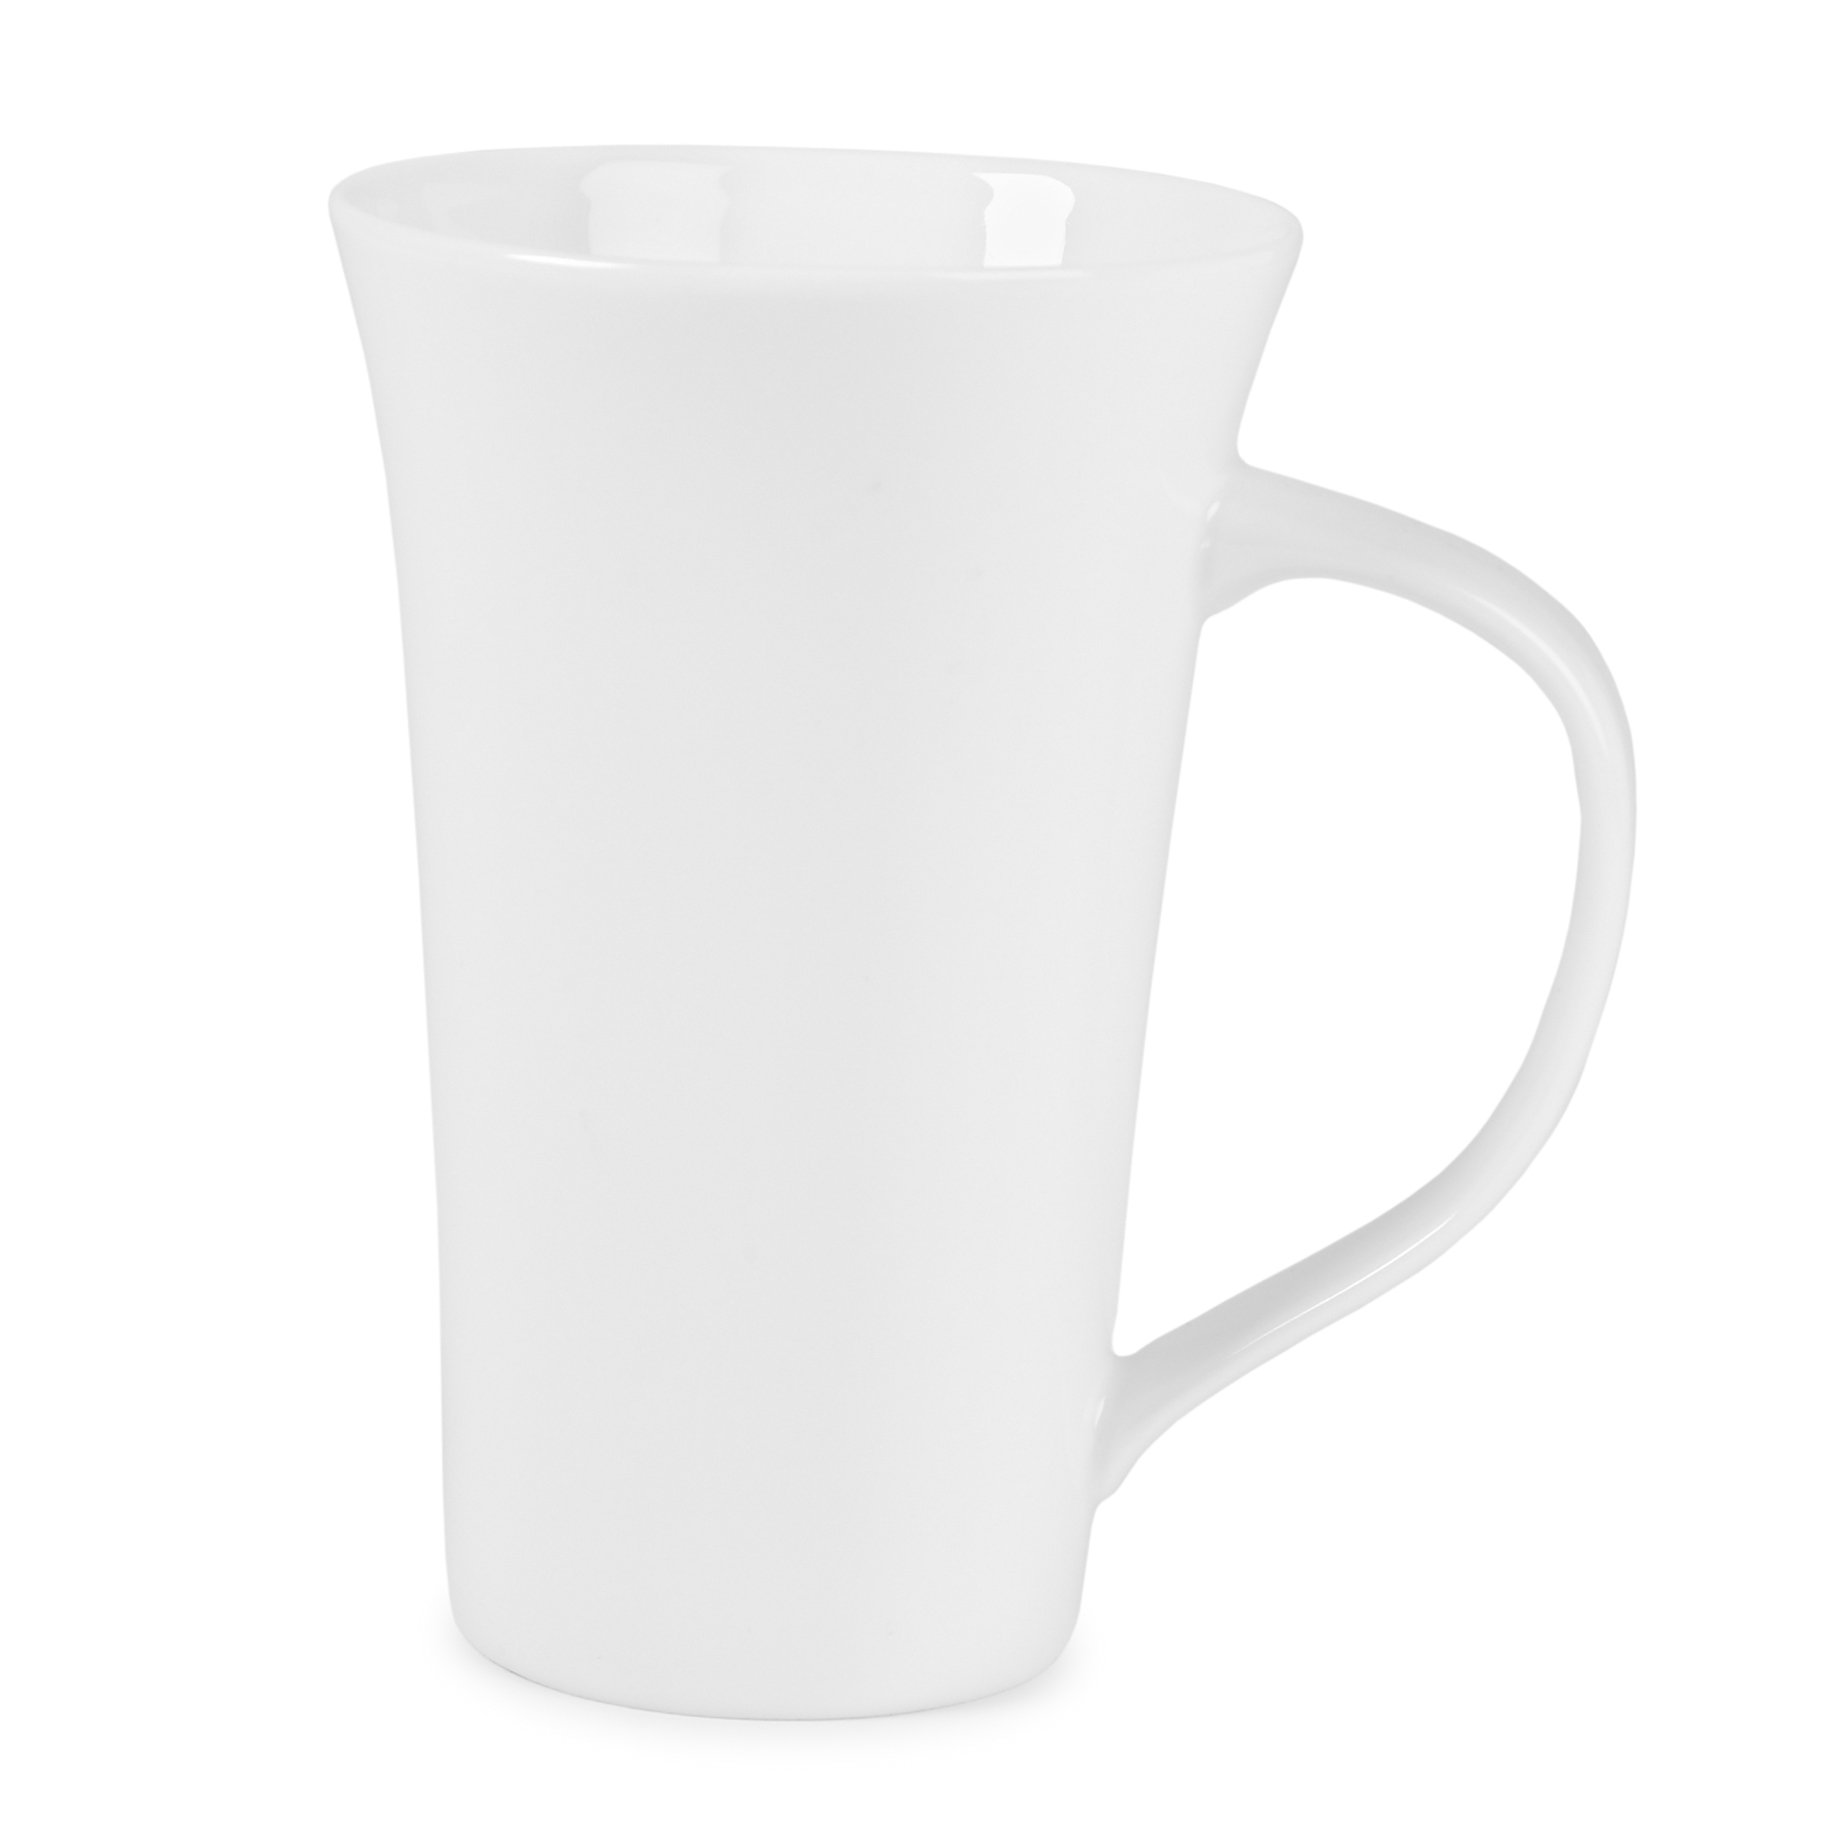 Gourmet Whiteware Collection, Latte Mug by Fitz and Floyd